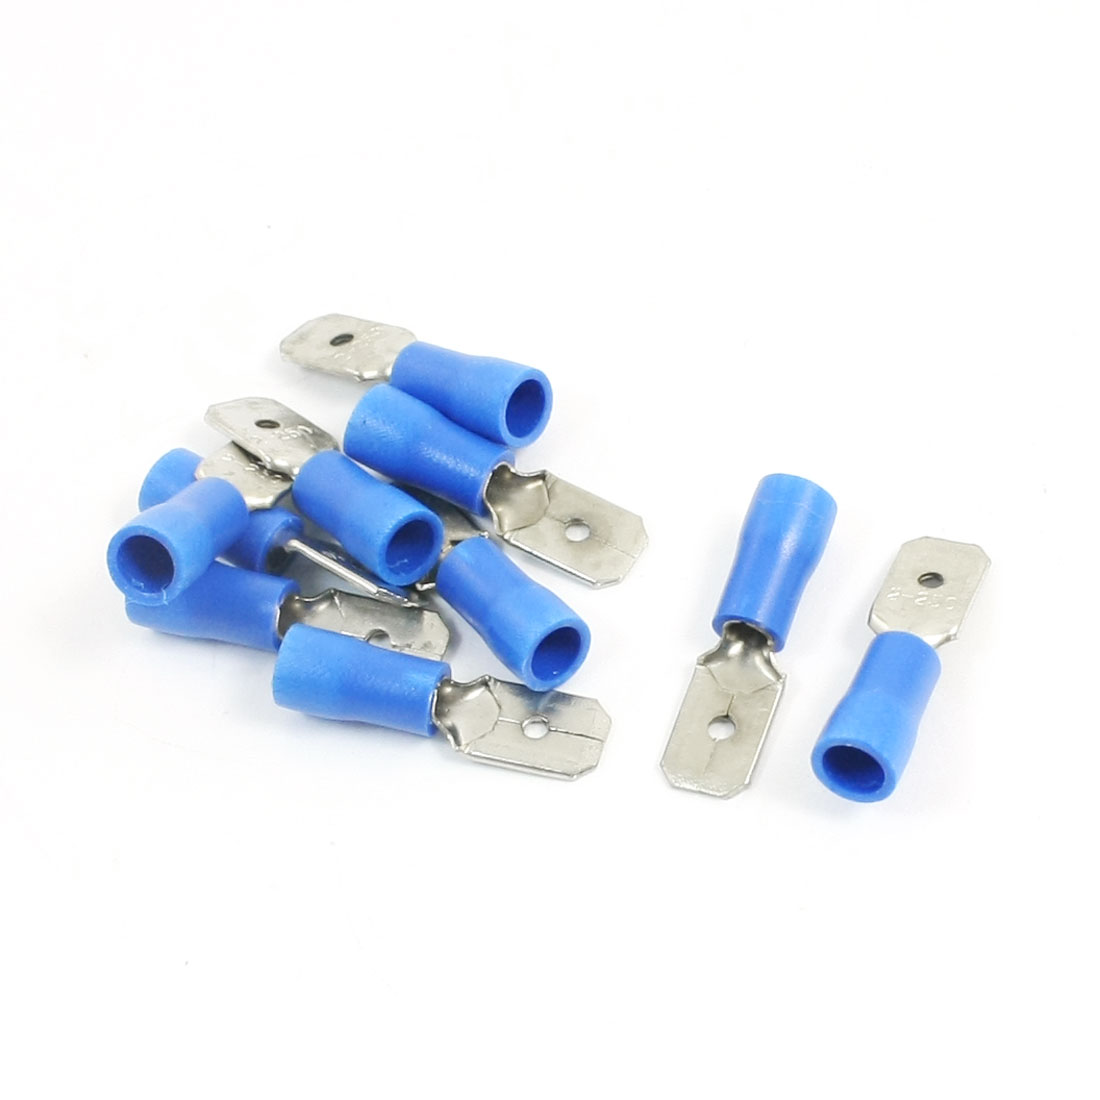 10Pcs 16-14 AWG MDD2-250 Blue PVC Sleeve Insulated Cable Terminals Crimp